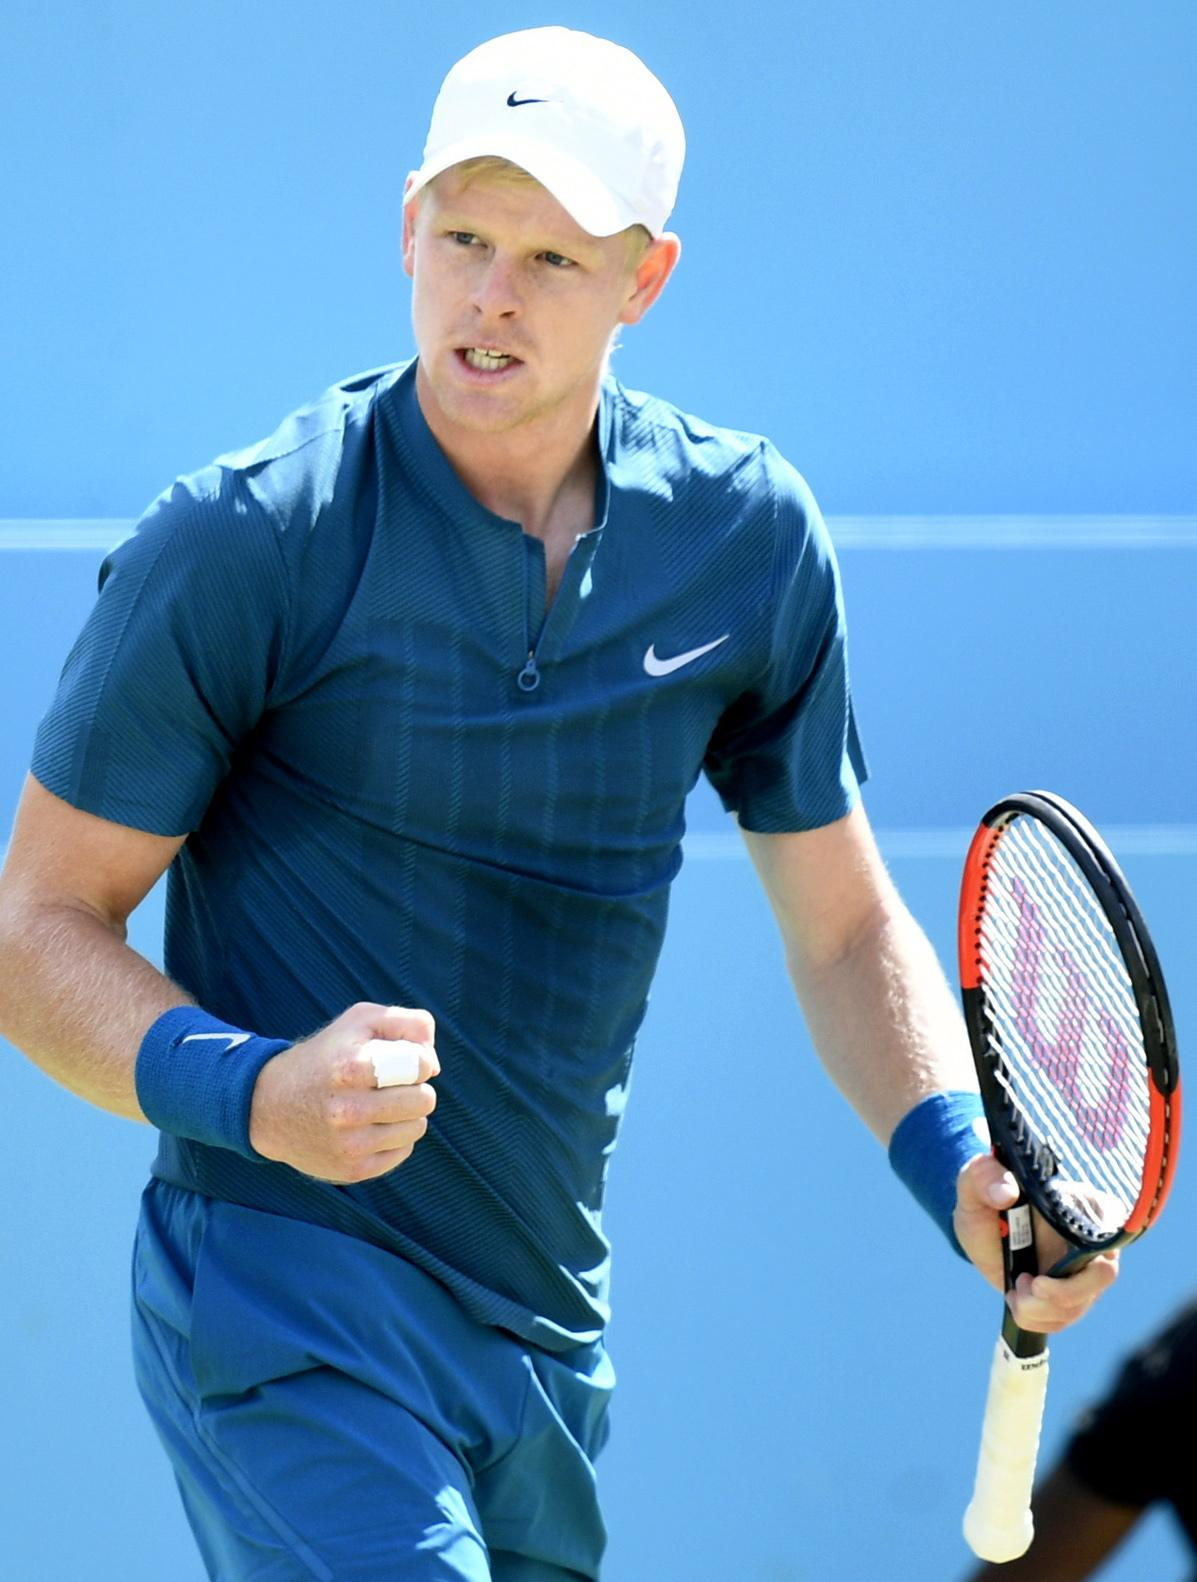 Kyle Edmund has enjoyed a great season and is now a top 20 player